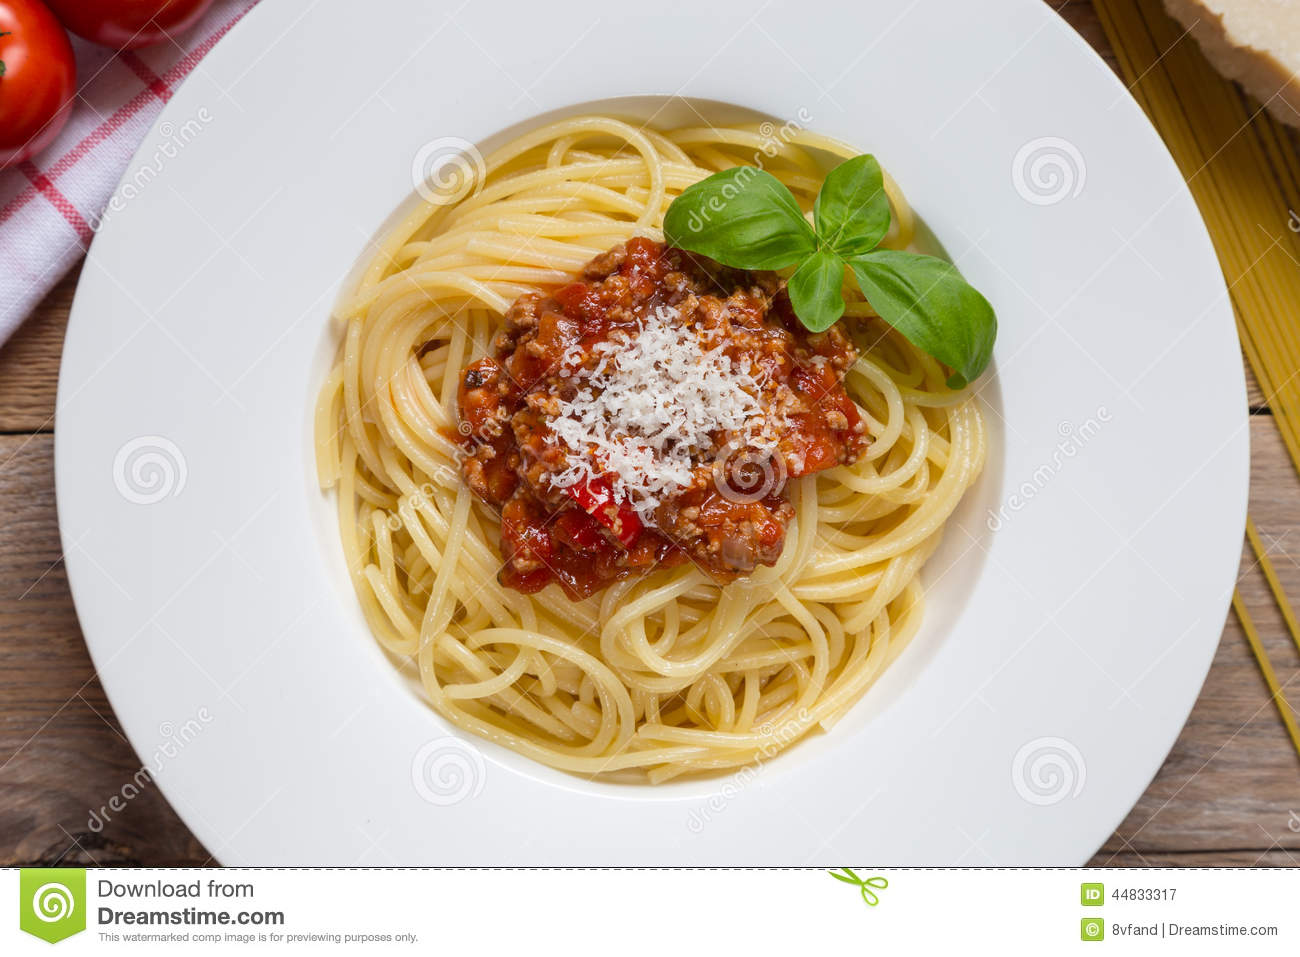 Spaghetti With Bolognese Sauce Parmesan And Basil Stock Photo - Image ...